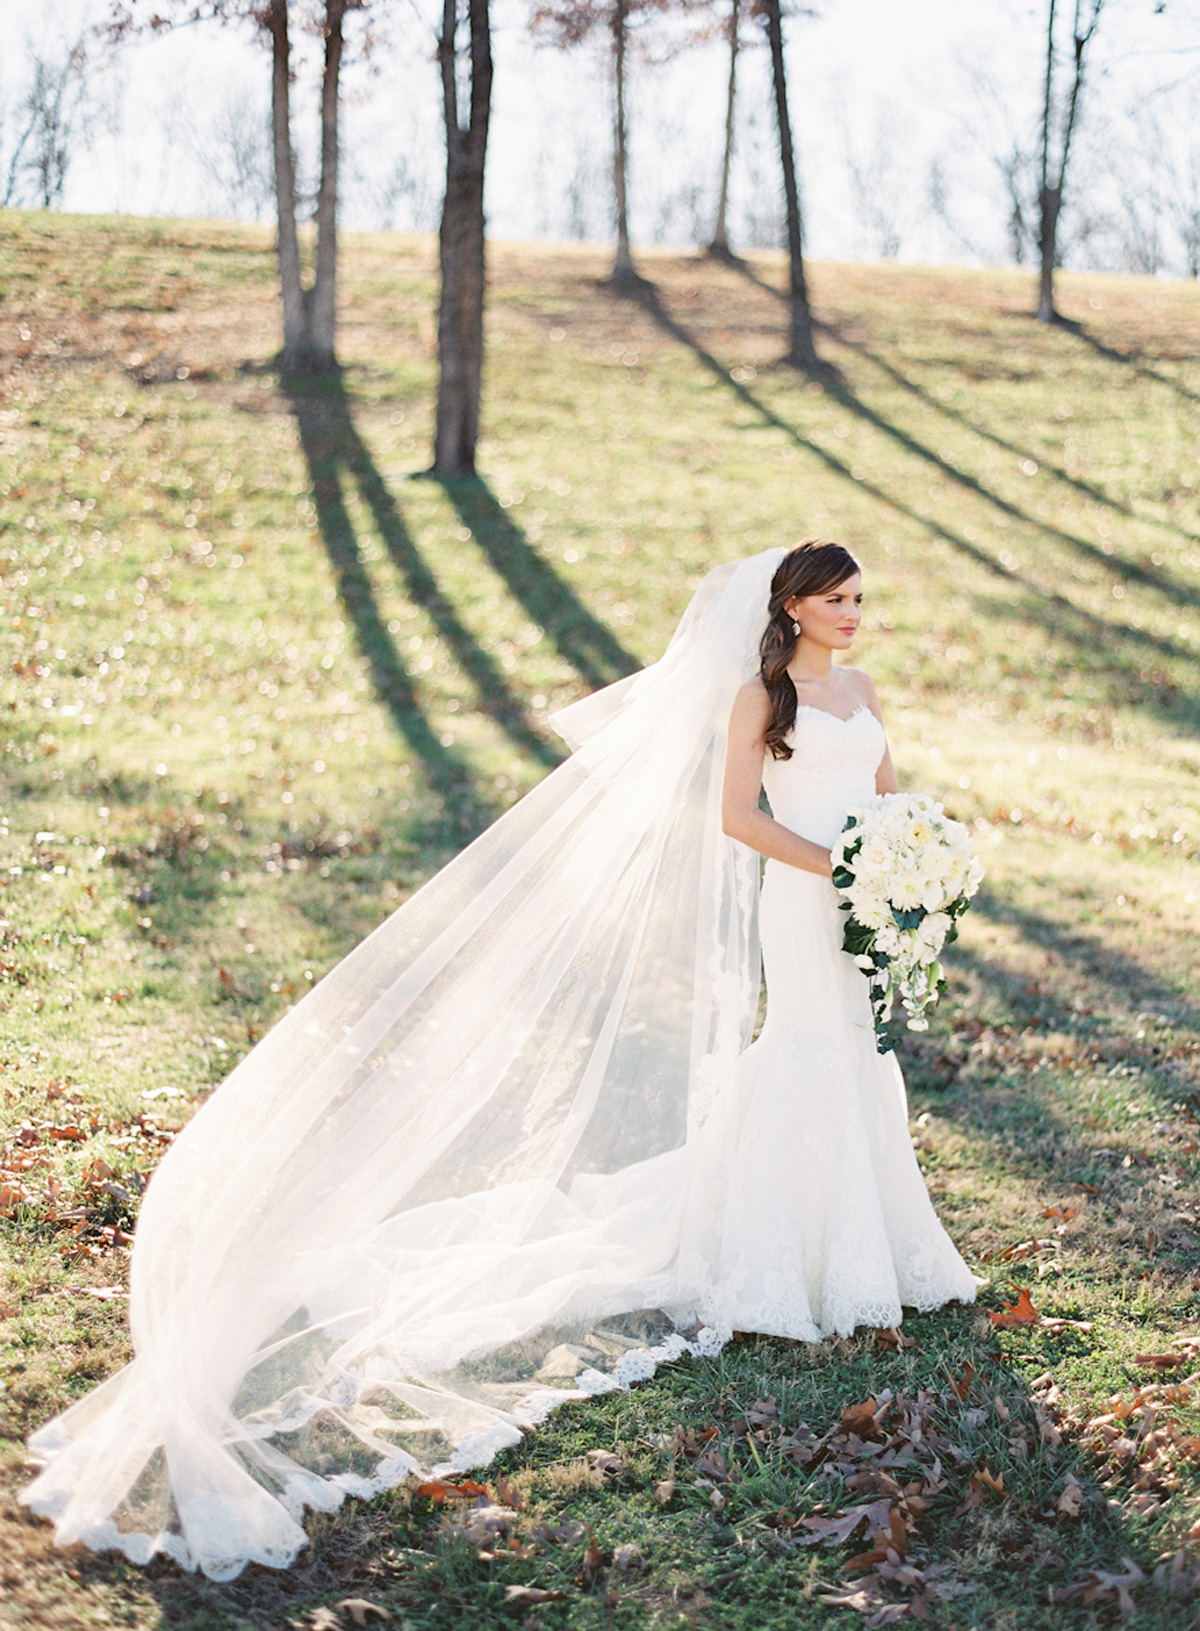 horton_farms_arkansas_blue_yellow_winter_fall_wedding_6